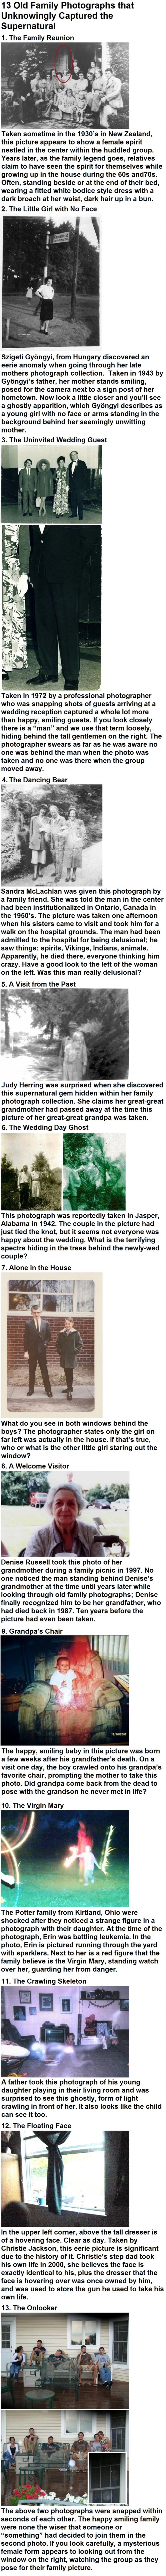 Family photos that unknowingly captured the supernatural